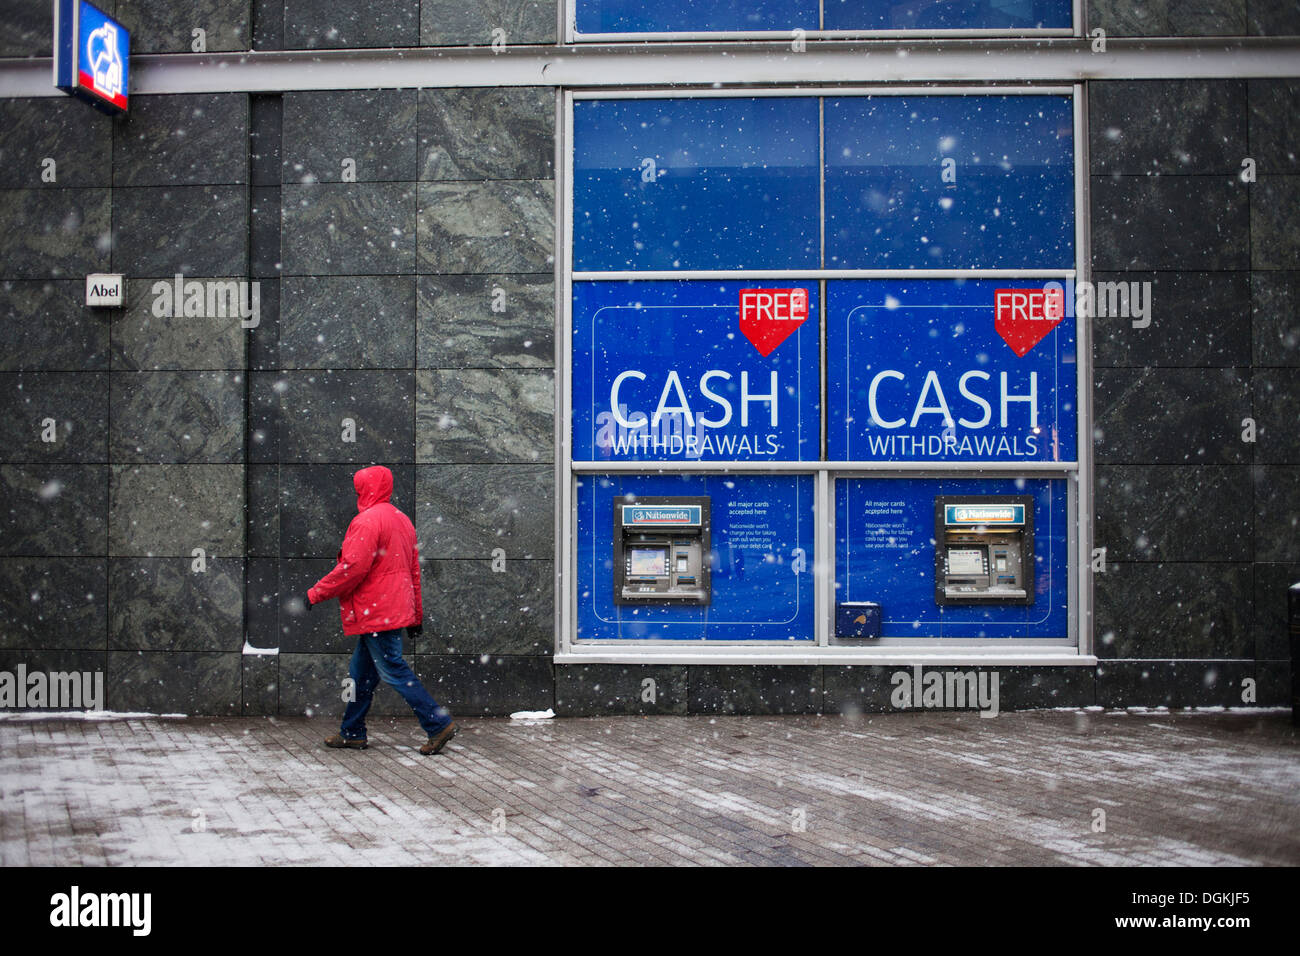 A man in a red jacket passes cash machines. - Stock Image